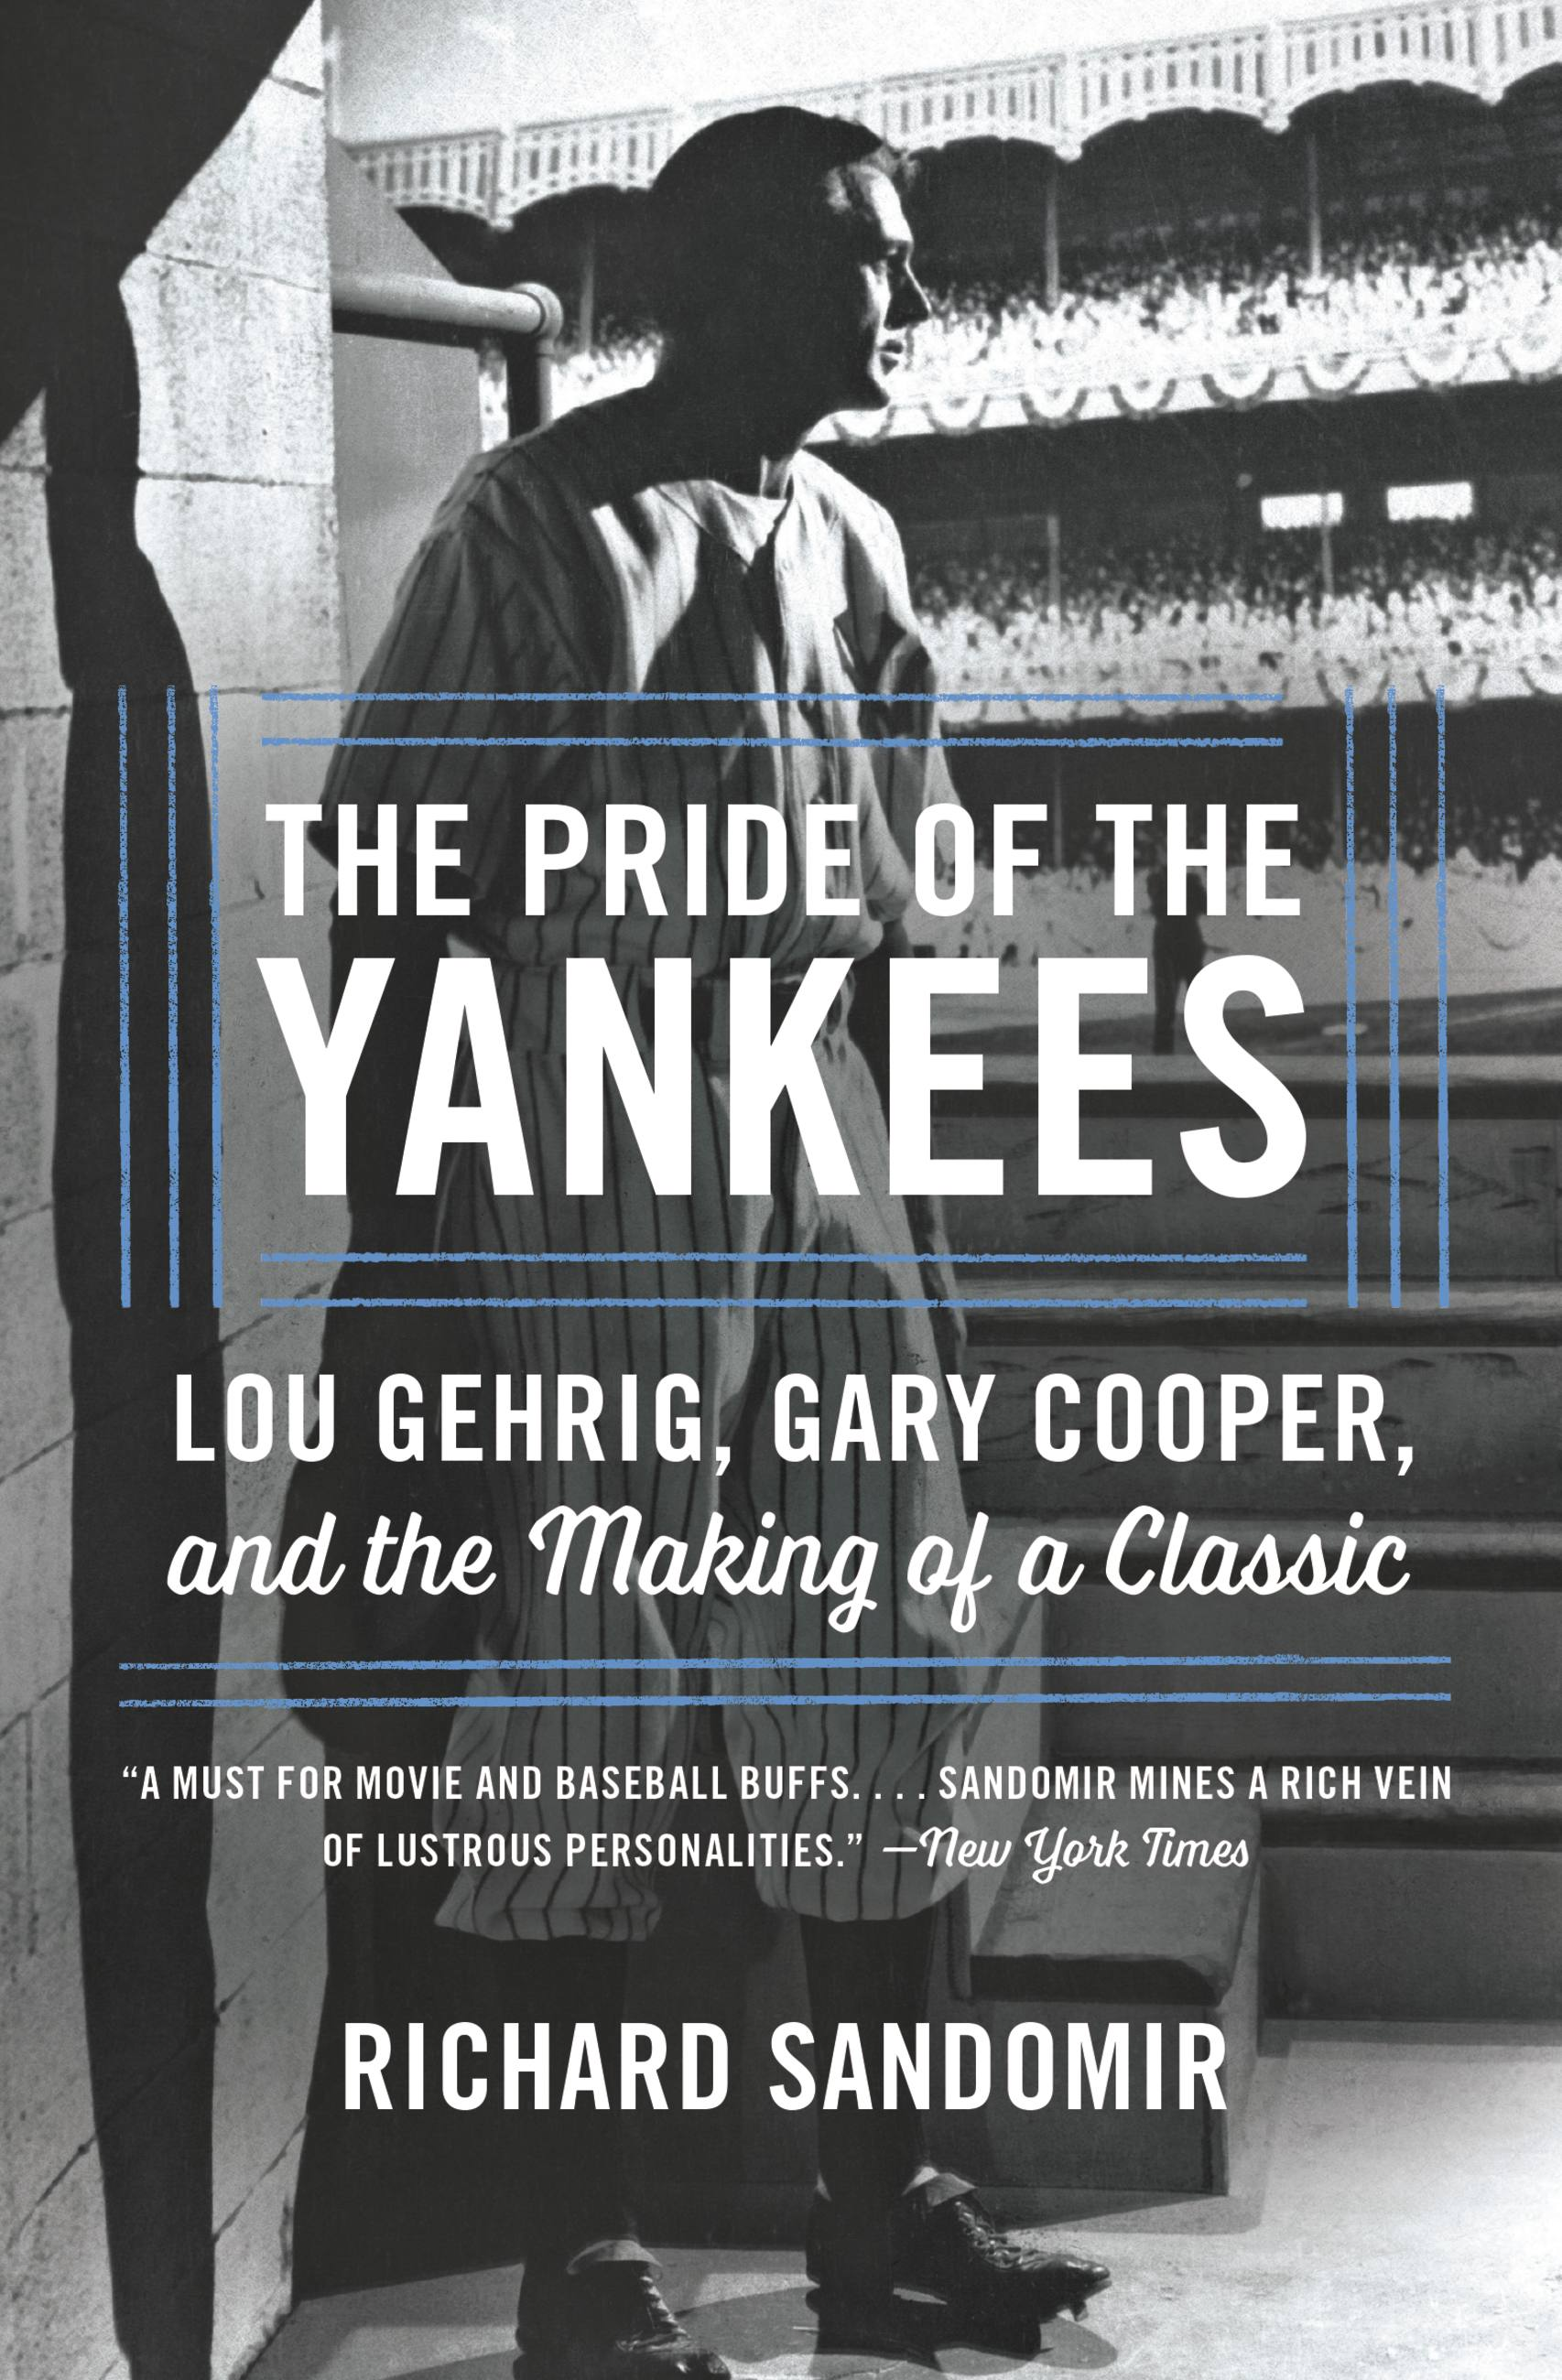 The Pride of the Yankees Lou Gehrig, Gary Cooper, and the Making of a Classic